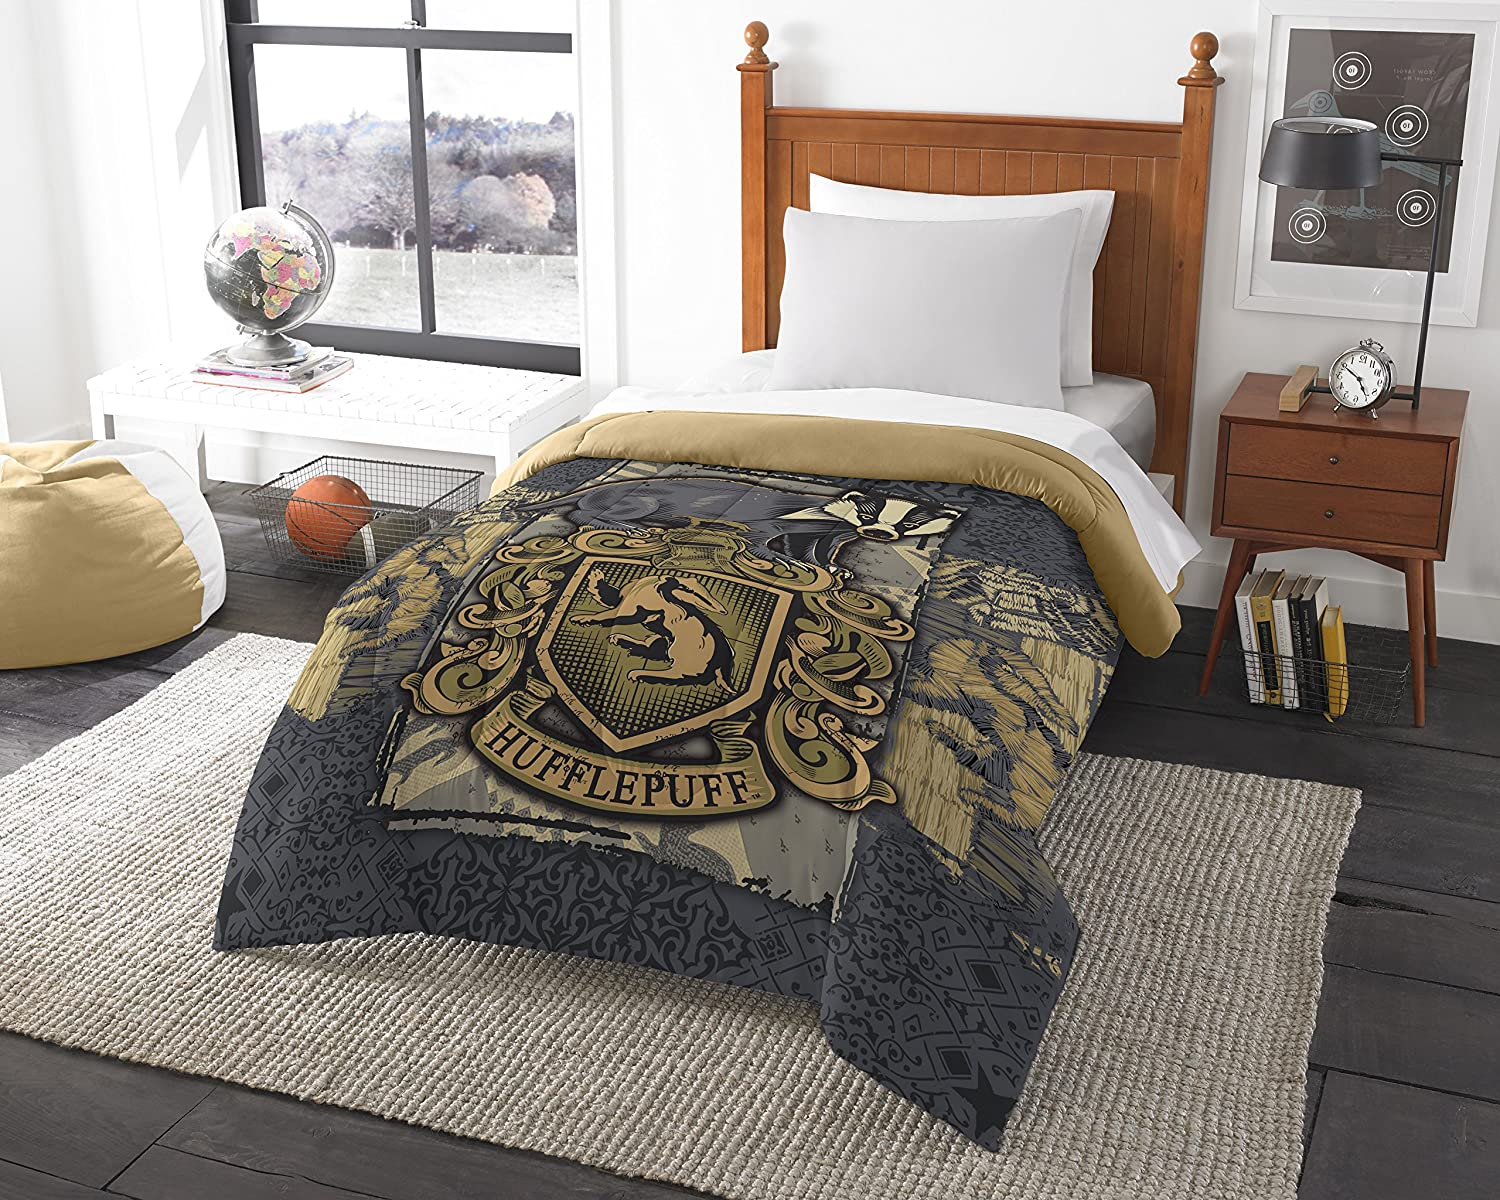 Warner Brothers Harry Potter, Magic House Gryffindor Twin/Full Comforter, 72 x 86, Multi Color 72 x 86 The Northwest Company 1HPT/87700/0001/AMZ